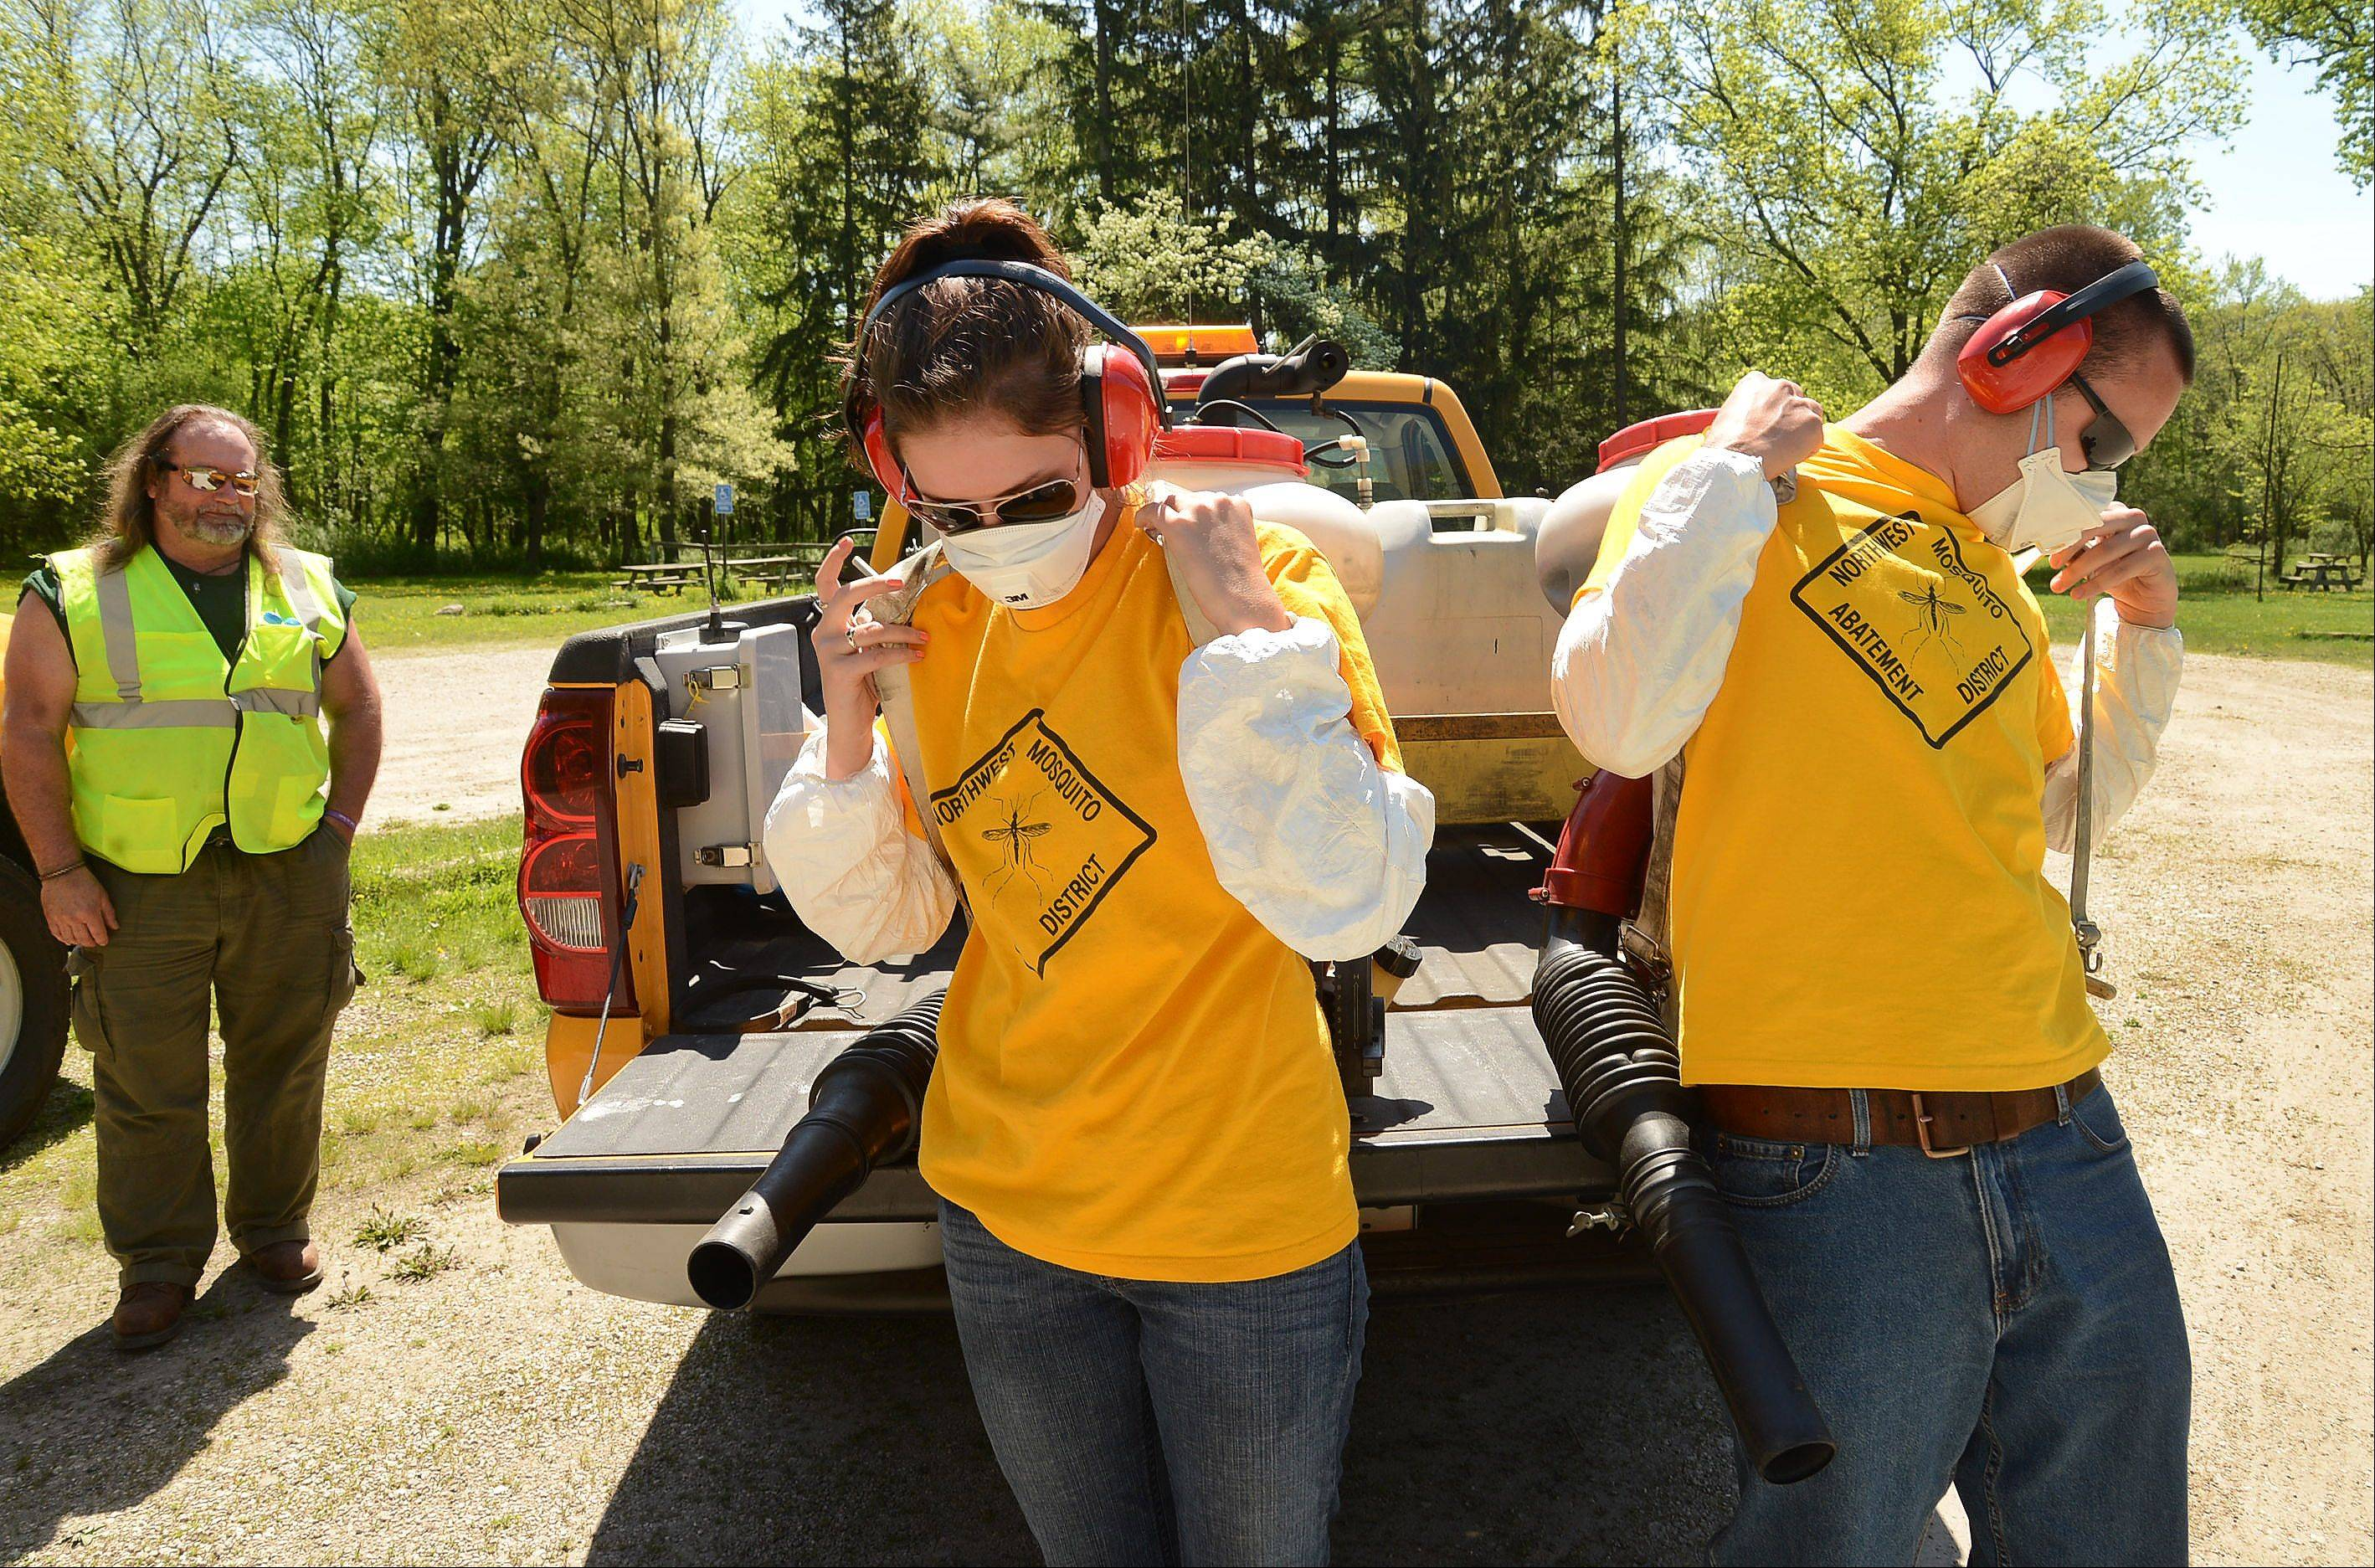 Northwest Mosquito Abatement District Field Technicians Shannon Stutzman and Kevin Ollerer strap on their backpacks to perform mosquito abatement in the Potawatomi Woods Forest Preserve near Wheeling under the direction of Chief of Field Operations Mark Baker, left.